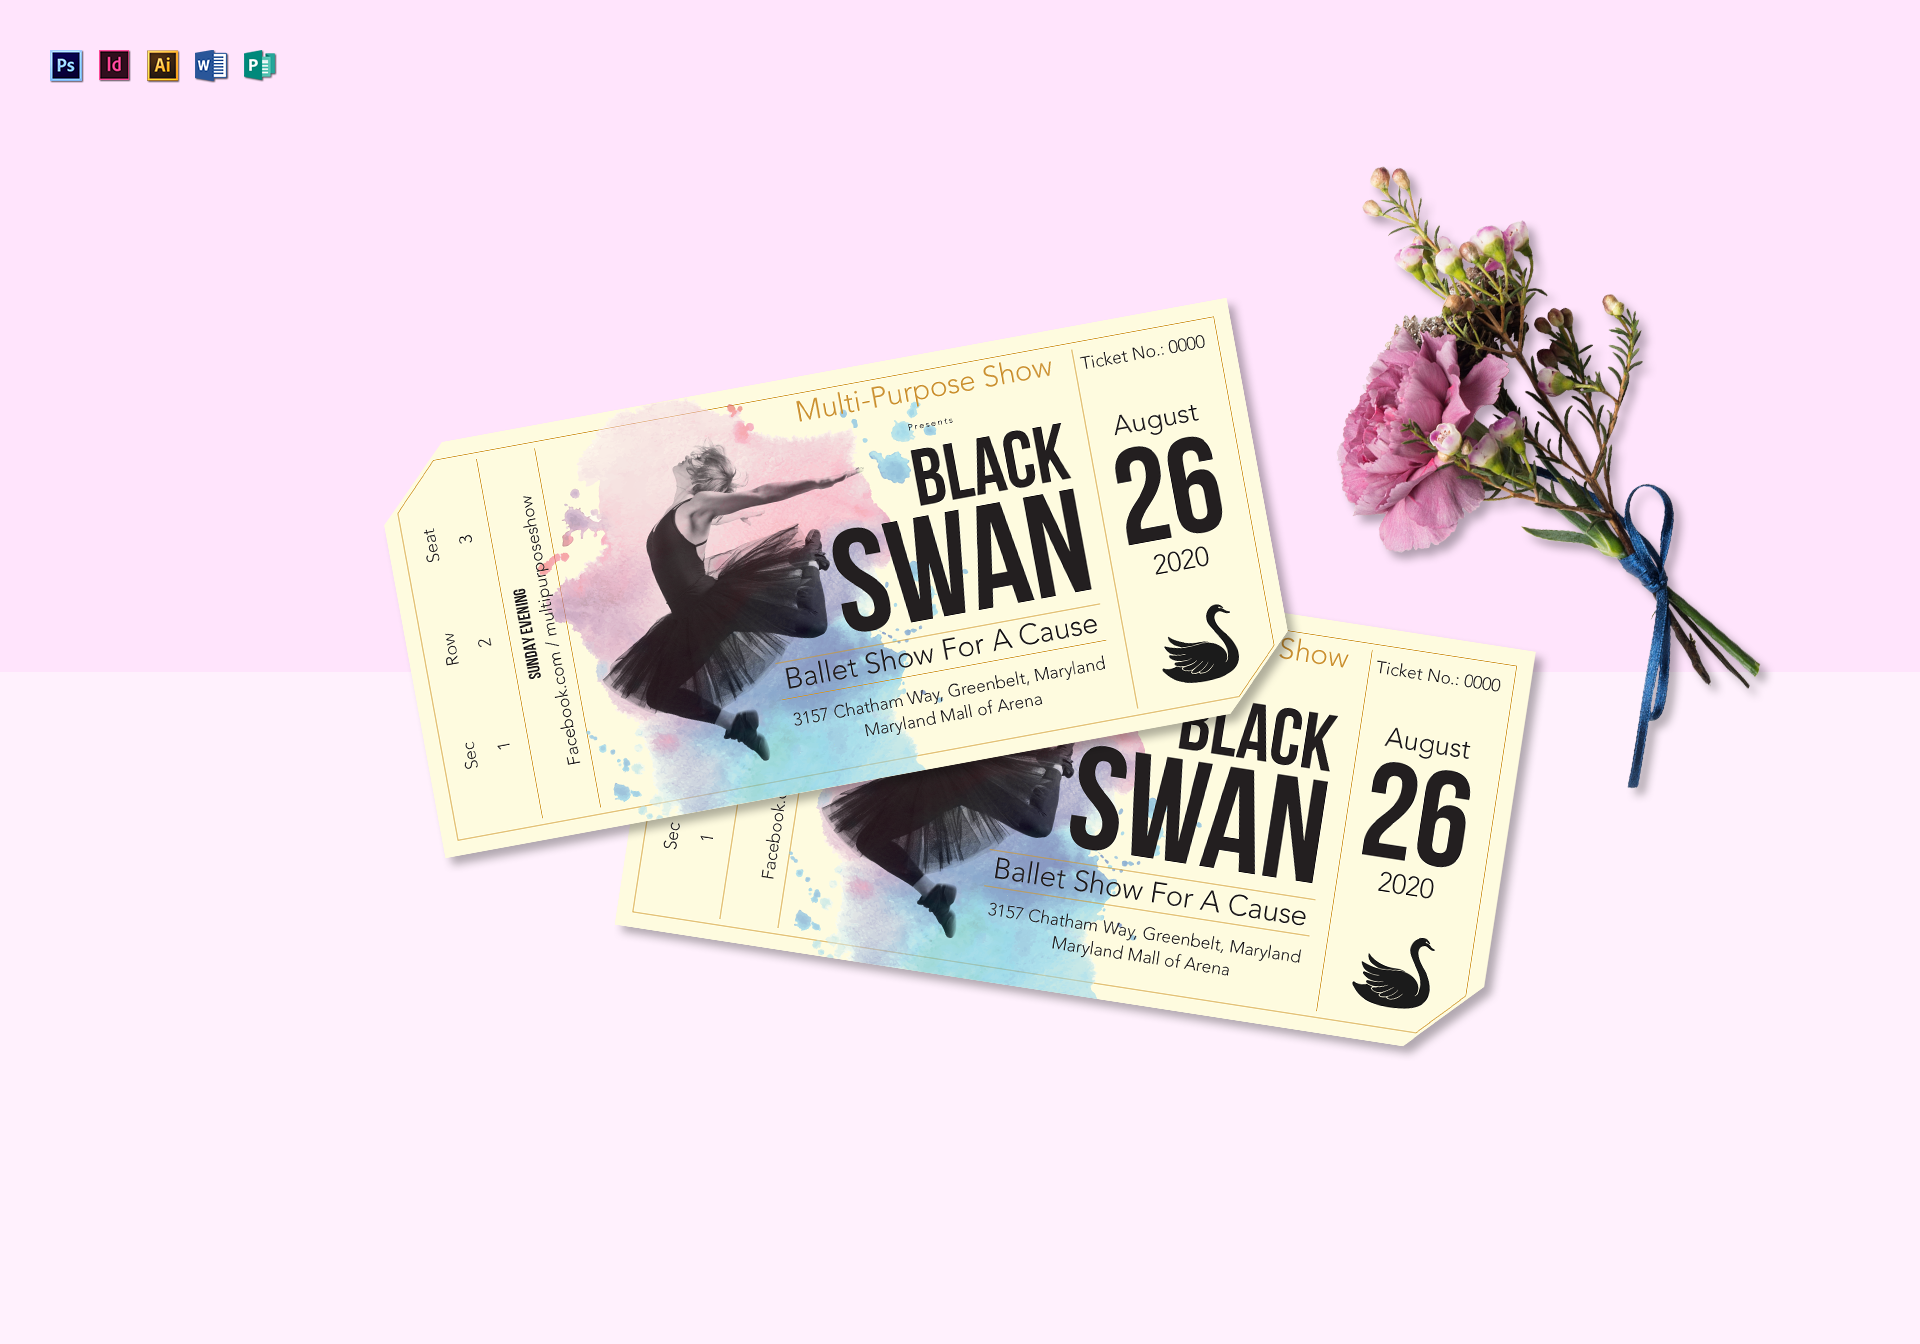 multipurpose event show ticket example